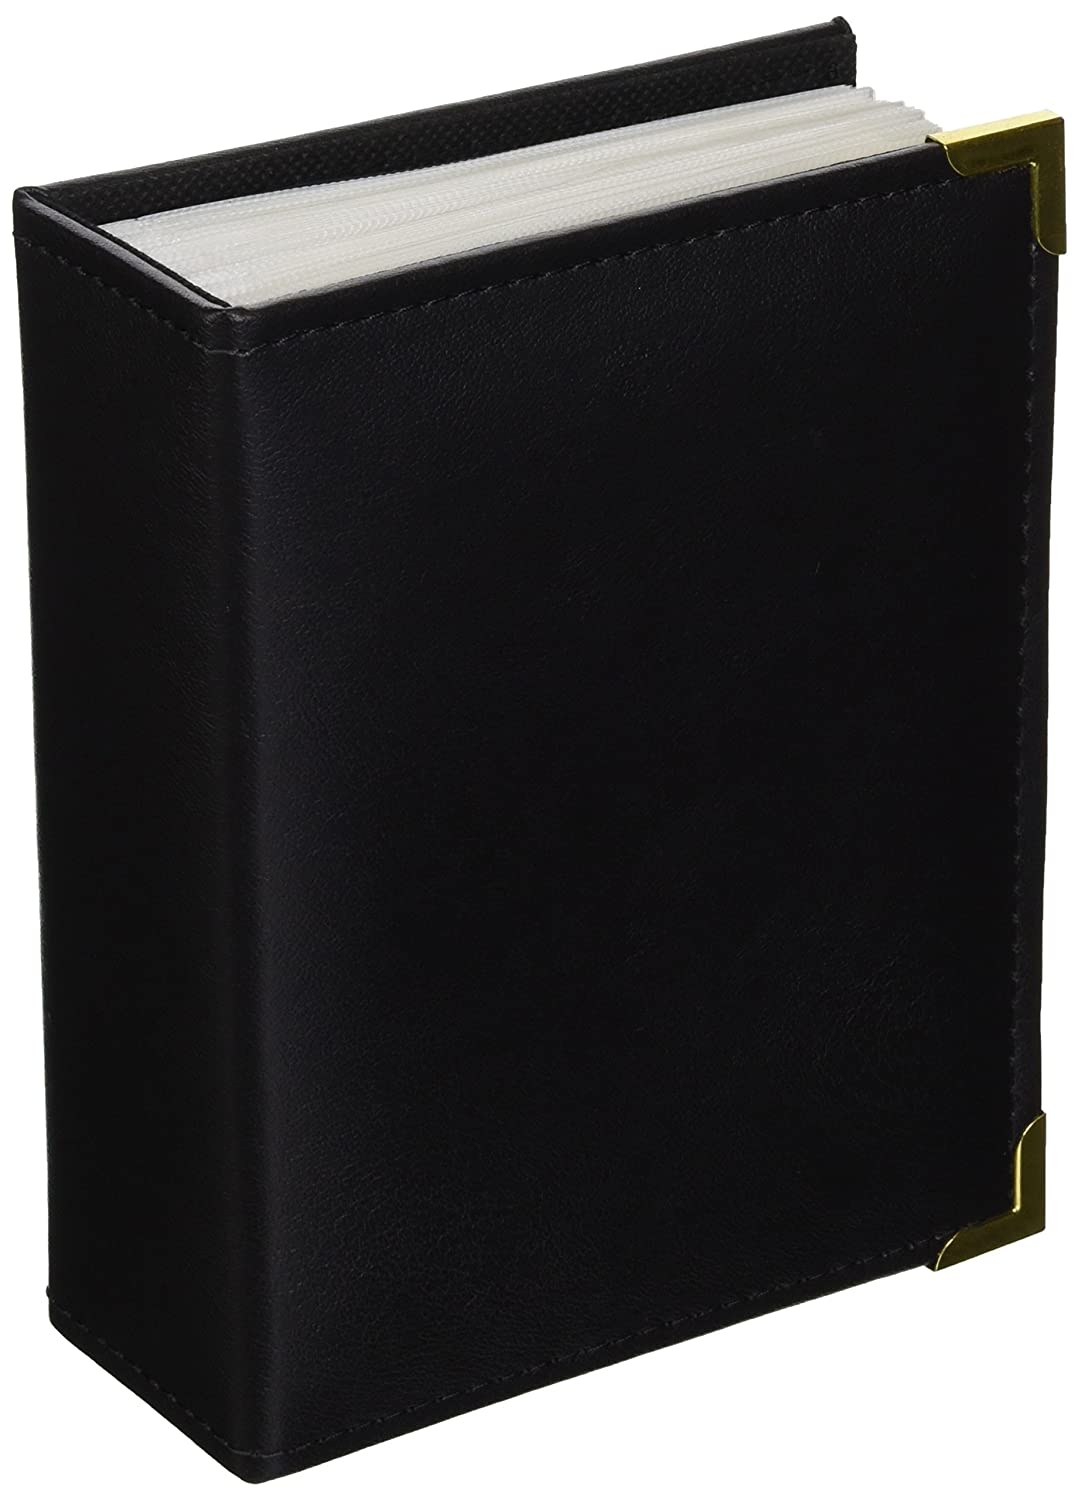 Pioneer Photo Albums 100 Pocket Brown Sewn Leatherette Cover with Brass Corner Accents Photo Album, 4 by 6-Inch E4-100/BN